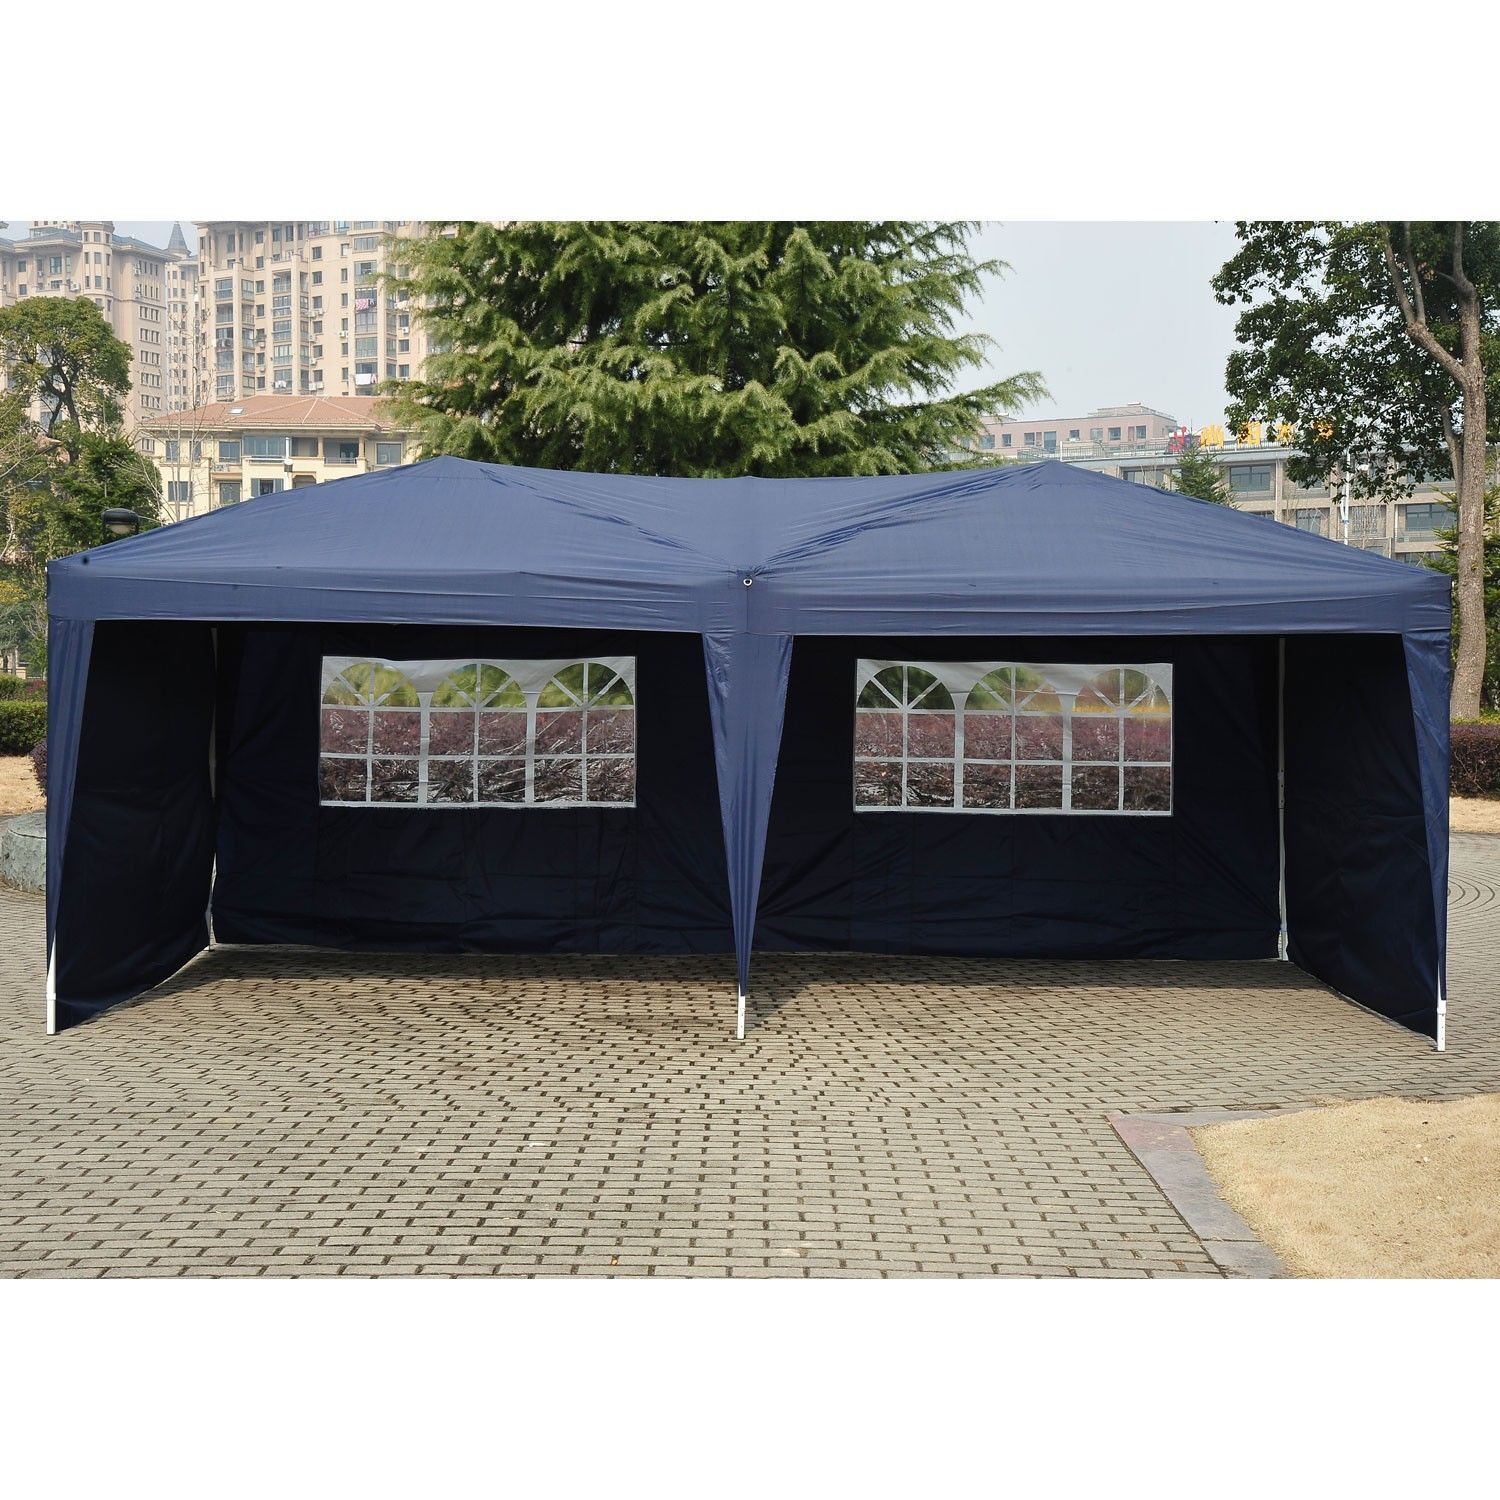 10 x 20 Pop Up Tent Blue  sc 1 st  Wholesale Event Tents & 10 x 20 Pop Up Tent Canopy w/ 4 Sidewalls - 5 Colors -